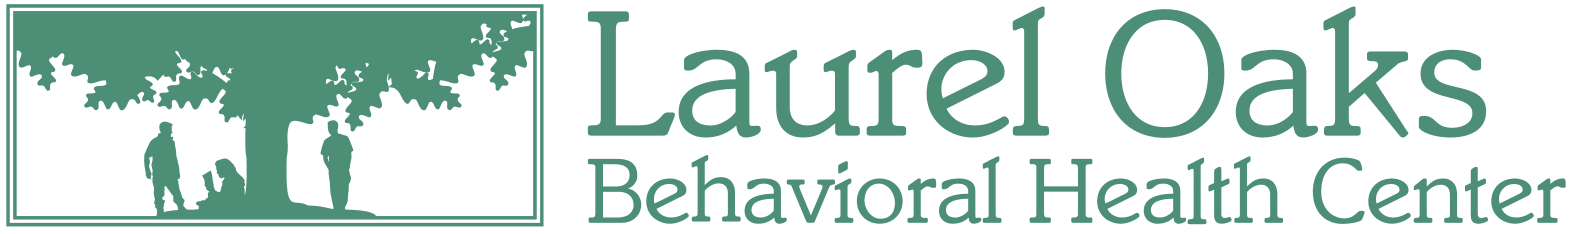 Laurel Oaks Behavioral Health Center